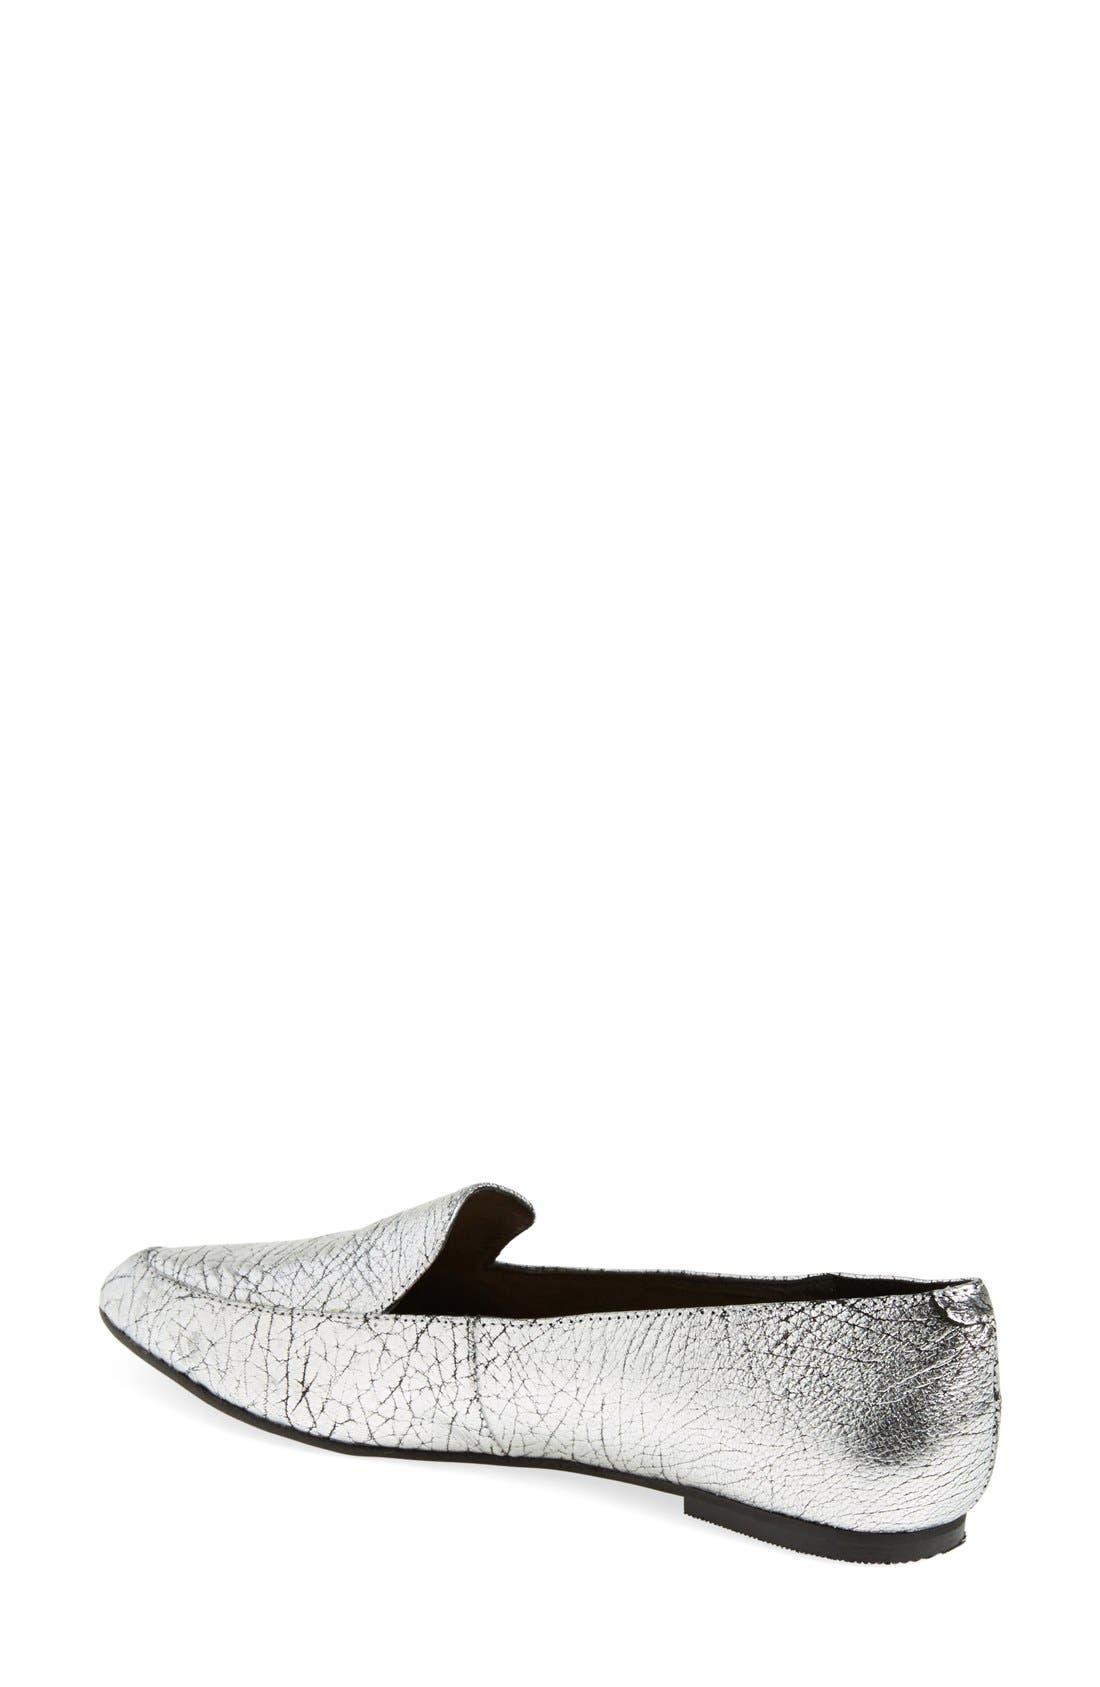 'Chandy' Loafer,                             Alternate thumbnail 2, color,                             040